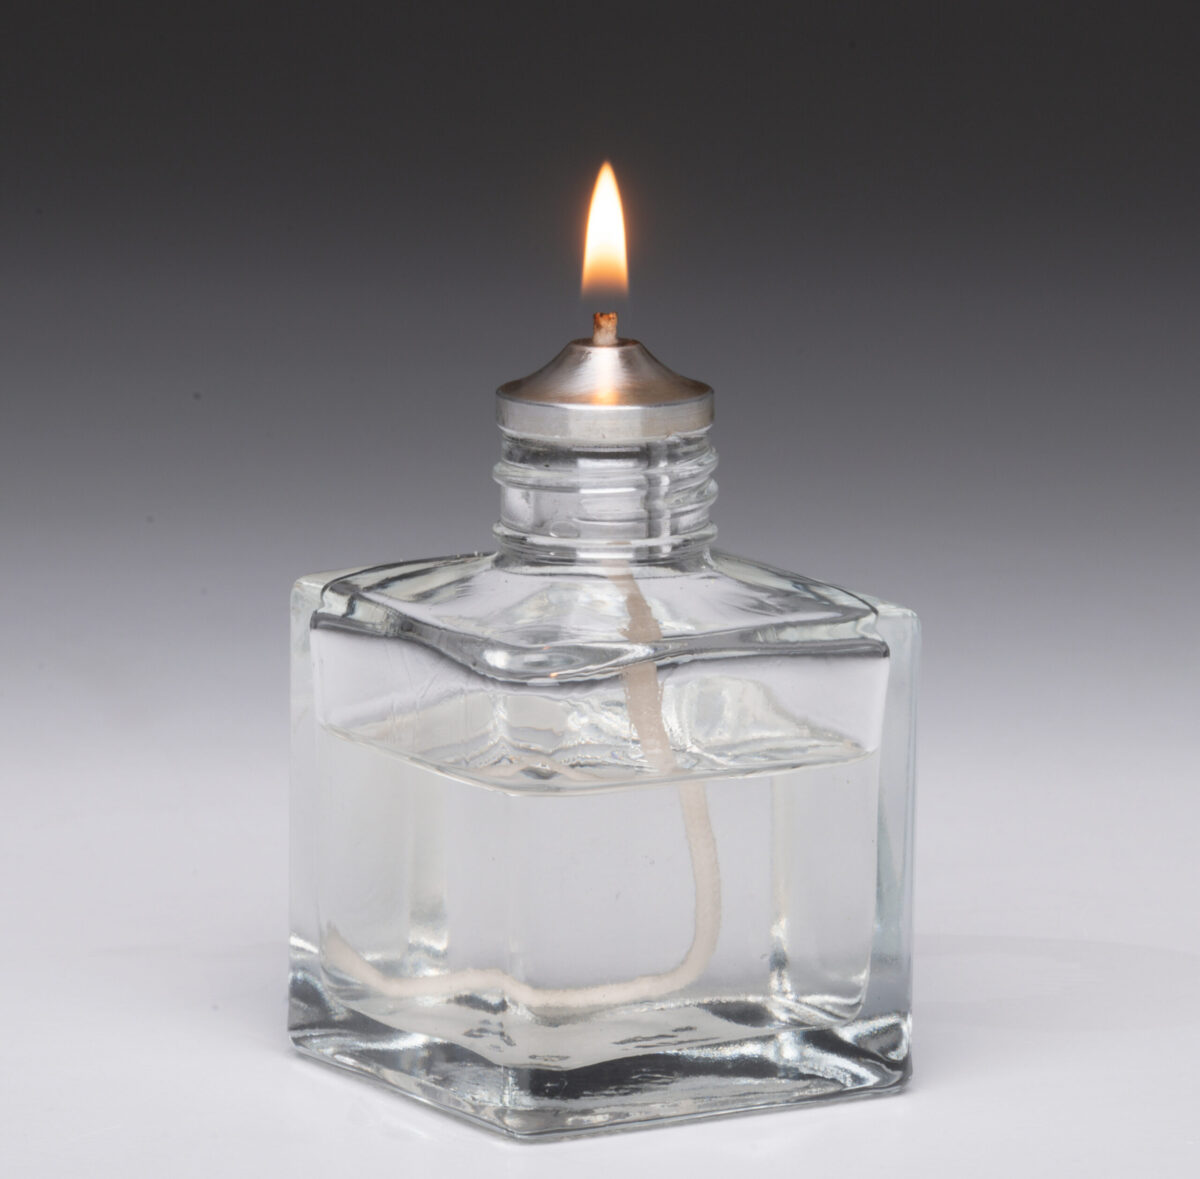 Firefly Aura Refillable Oil Candle